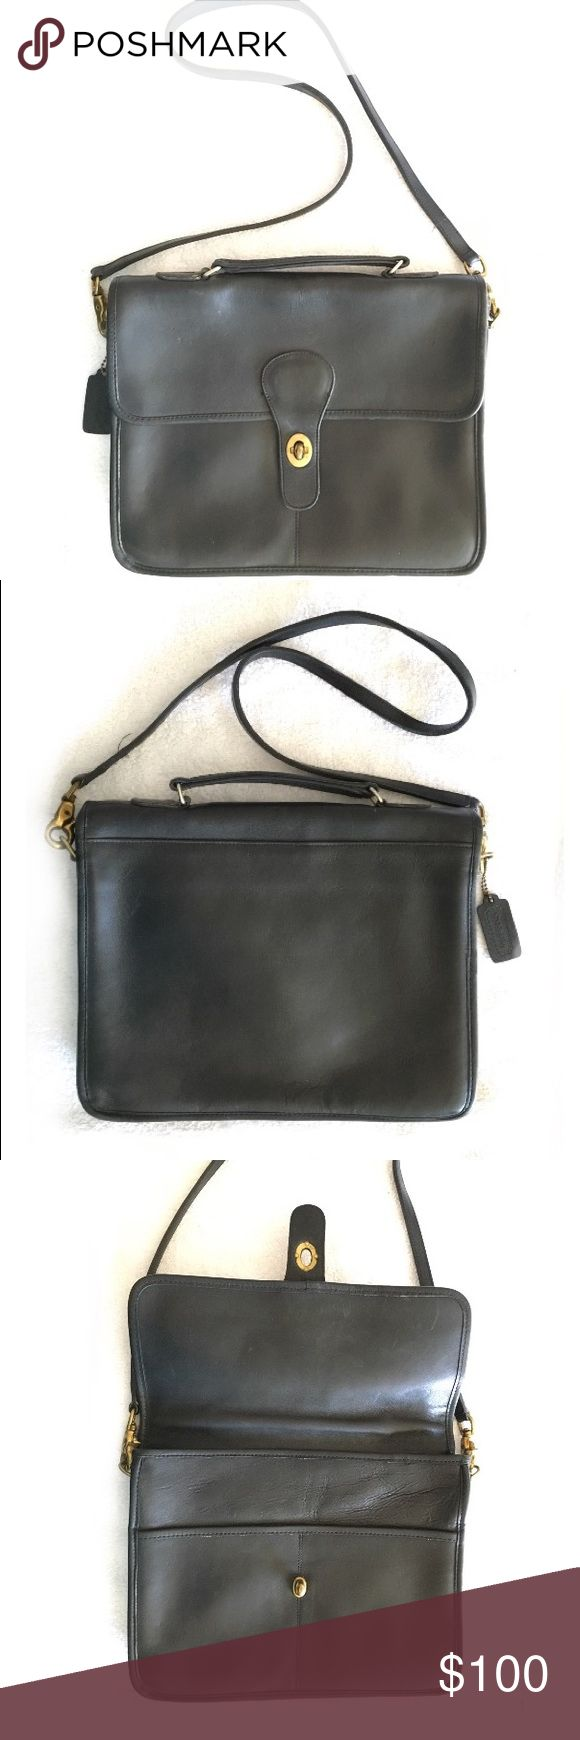 Coach Vintage Black Station Bag Purse NY USA Gorgeous Coach Vintage Black Station Bag - made in New York!  Excellent vintage condition - very little visible wear. The interior zip is a little rough and tarnished. Coach Bags Shoulder Bags